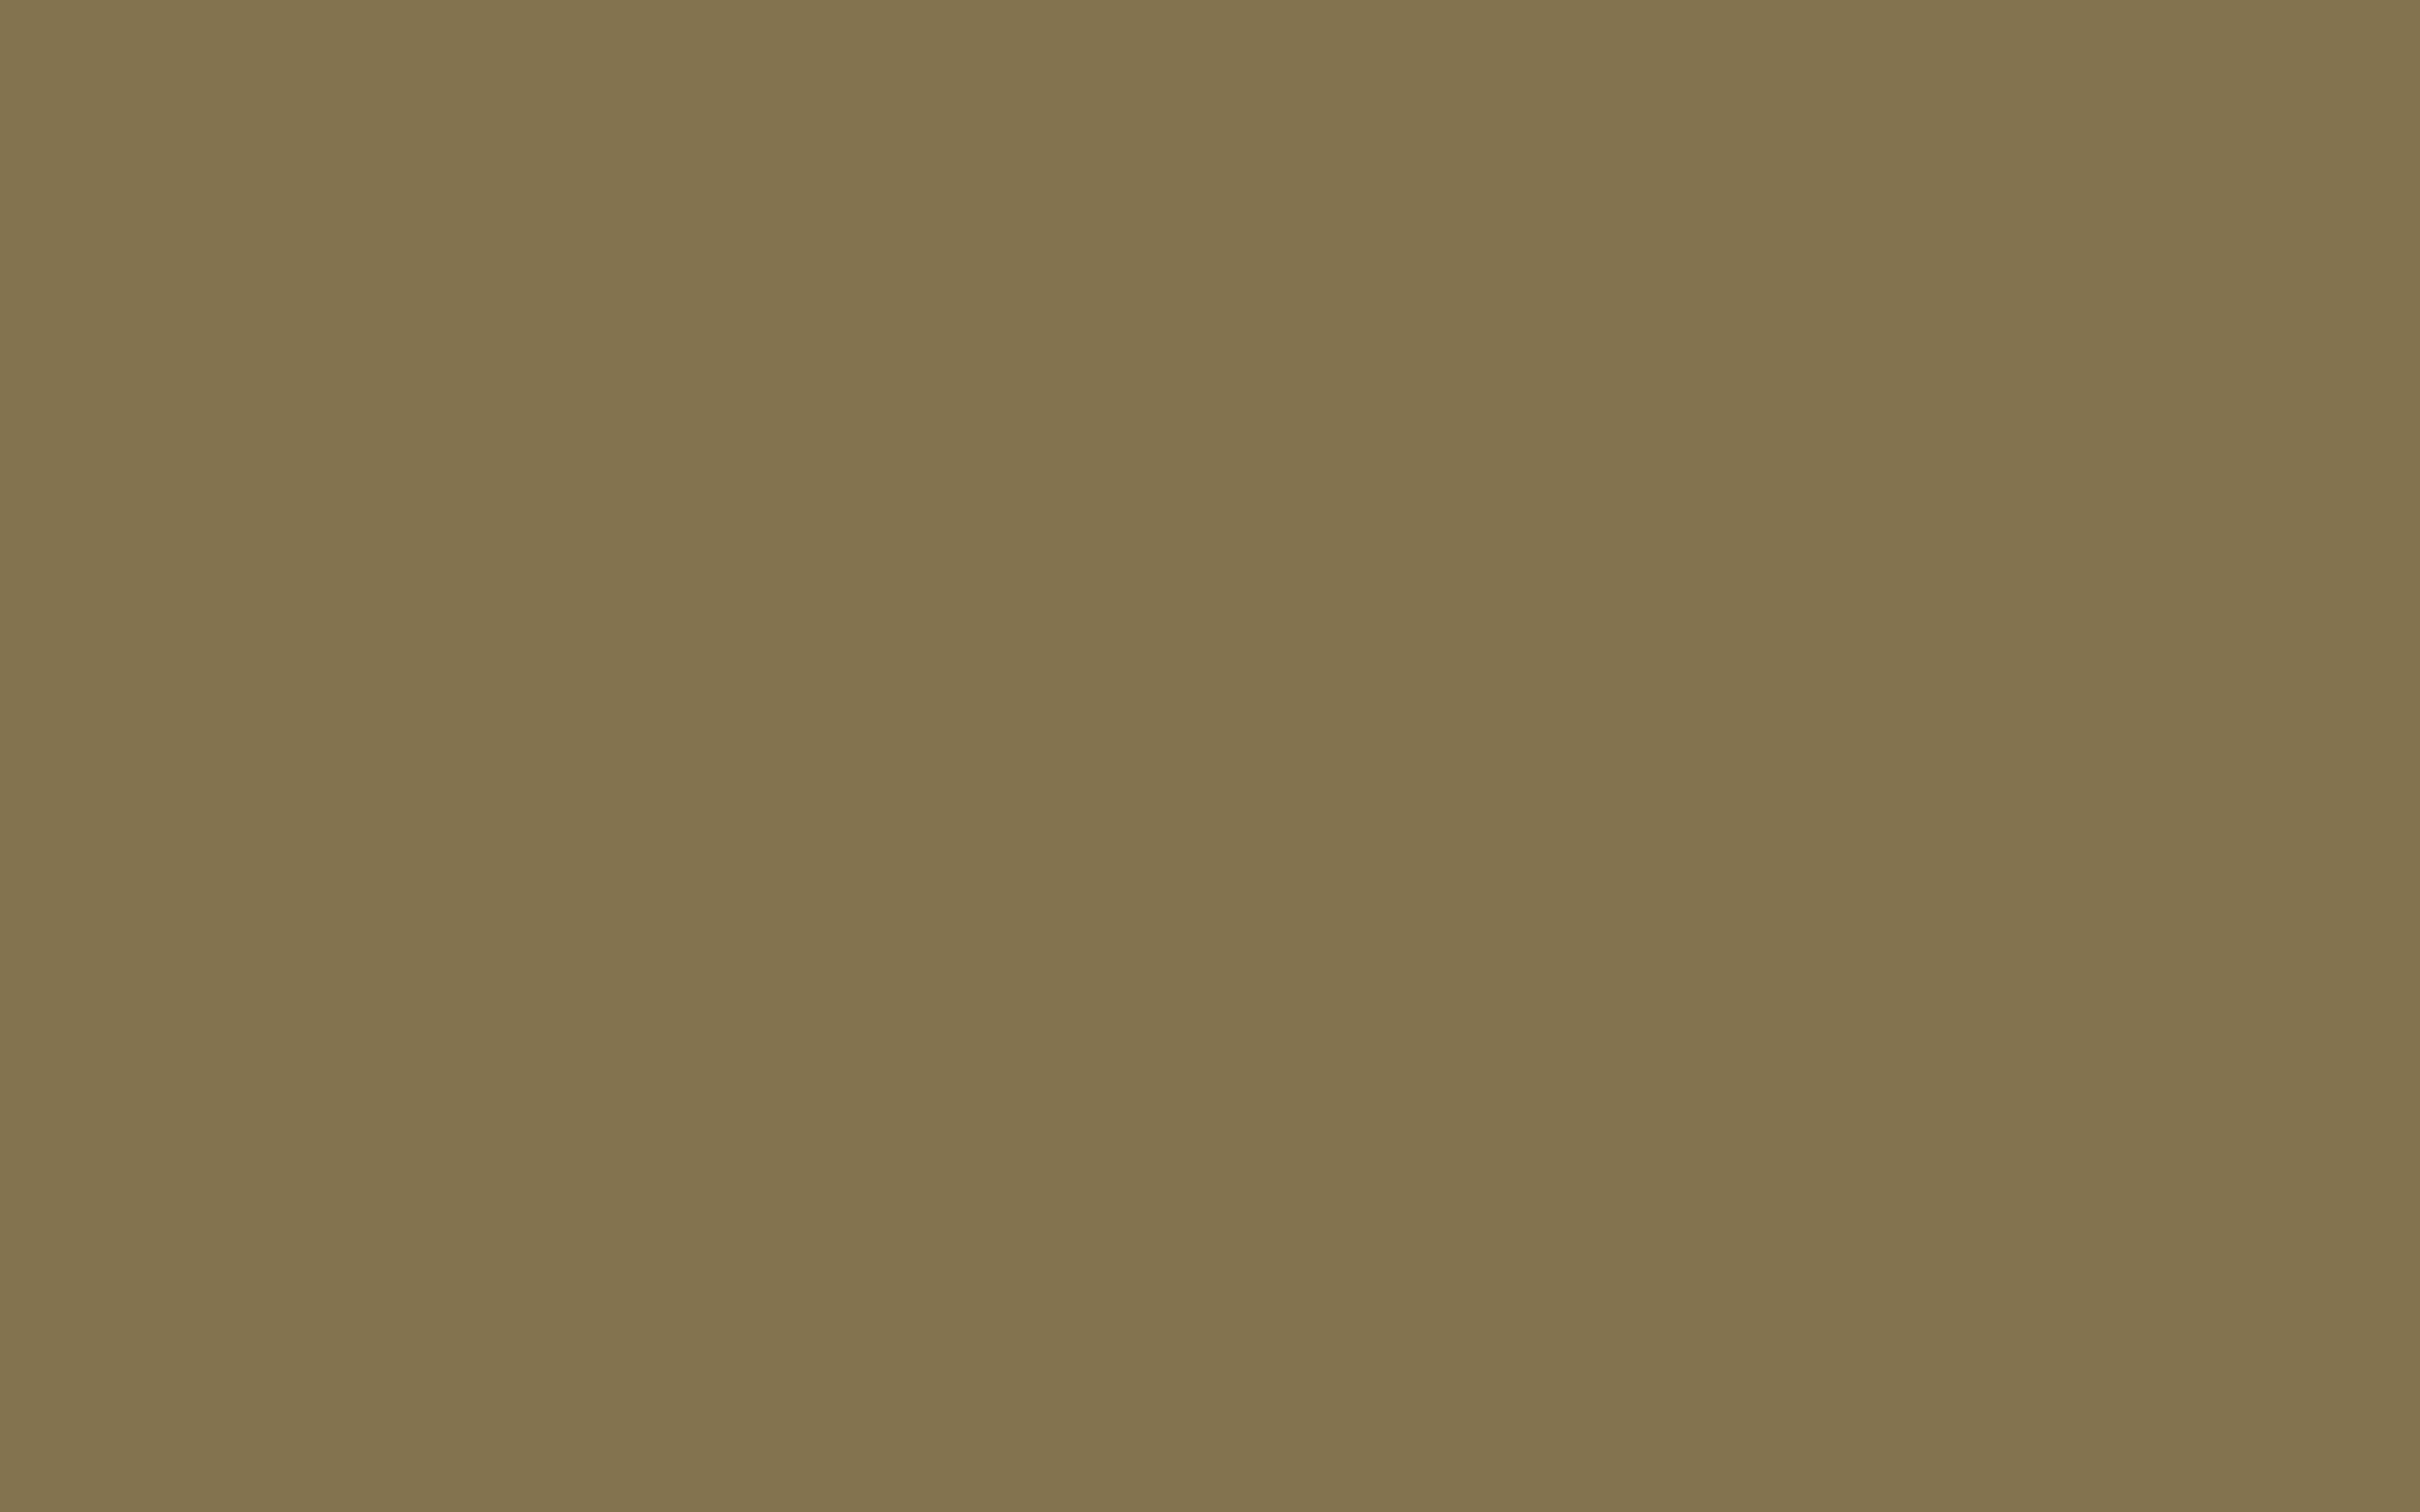 2880x1800 Gold Fusion Solid Color Background